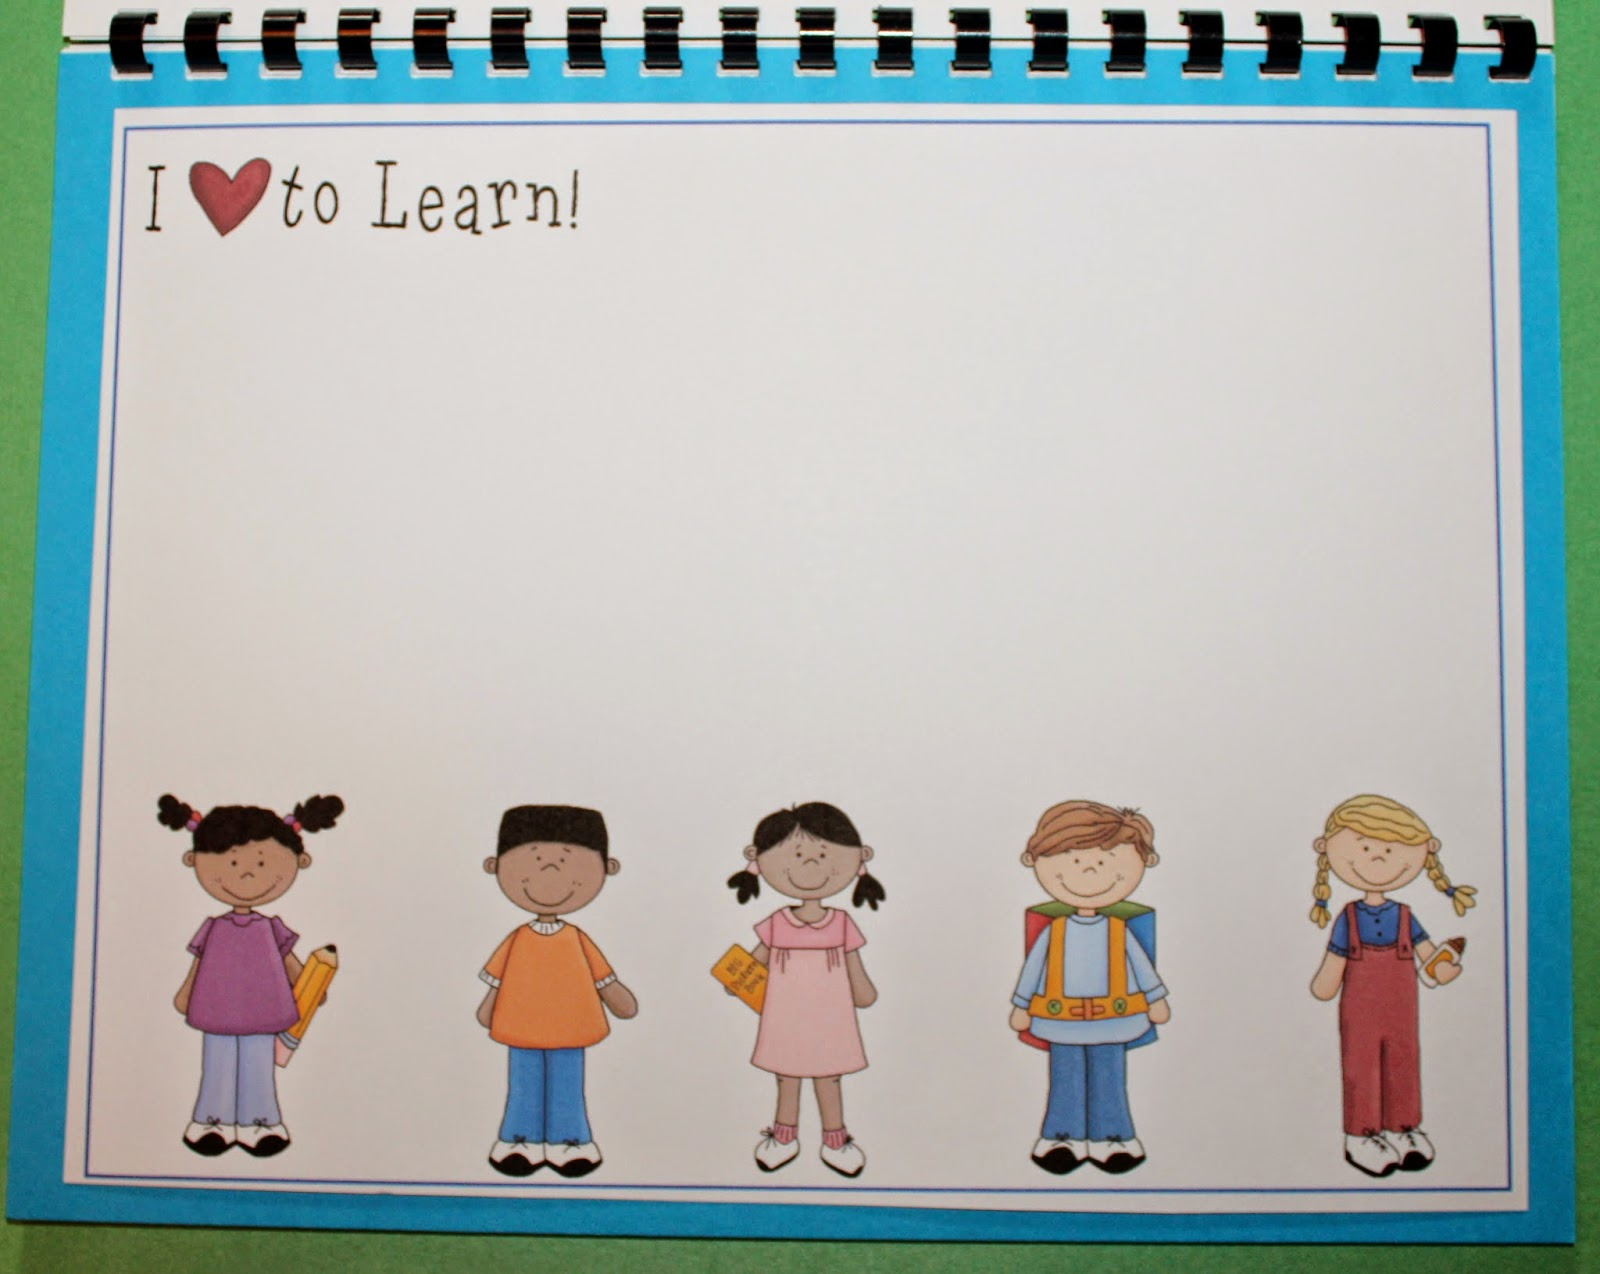 1 - 2 - 3 Learn Curriculum: 2016 Handprint Calendar Template with ...